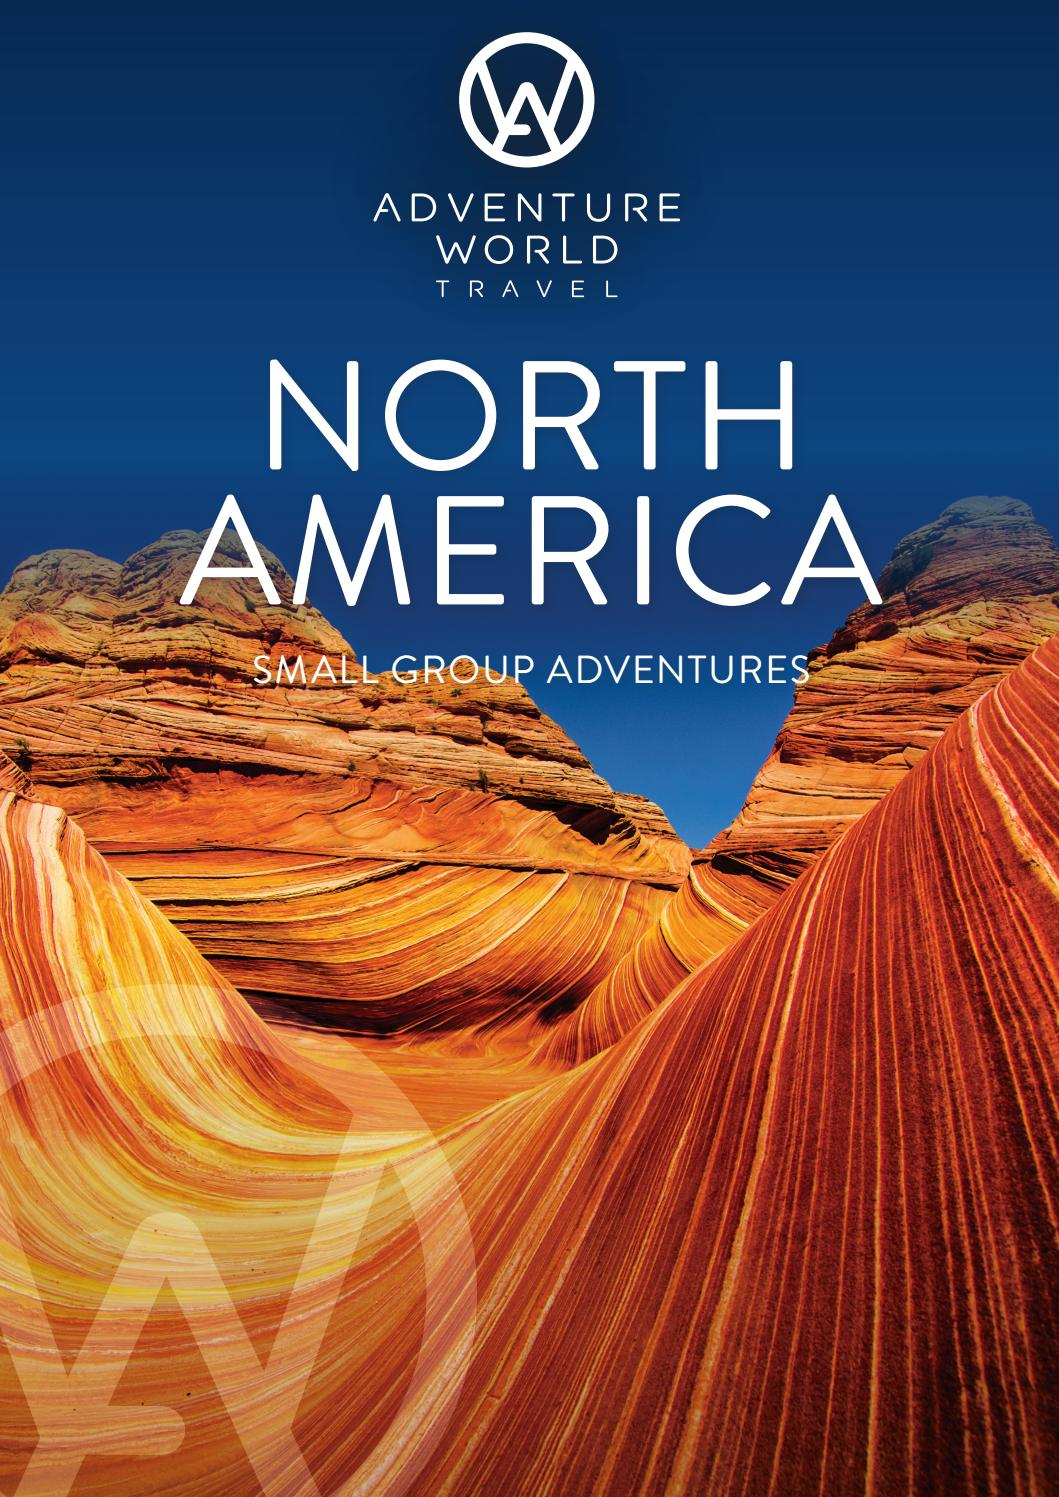 North America Small Group Adventures